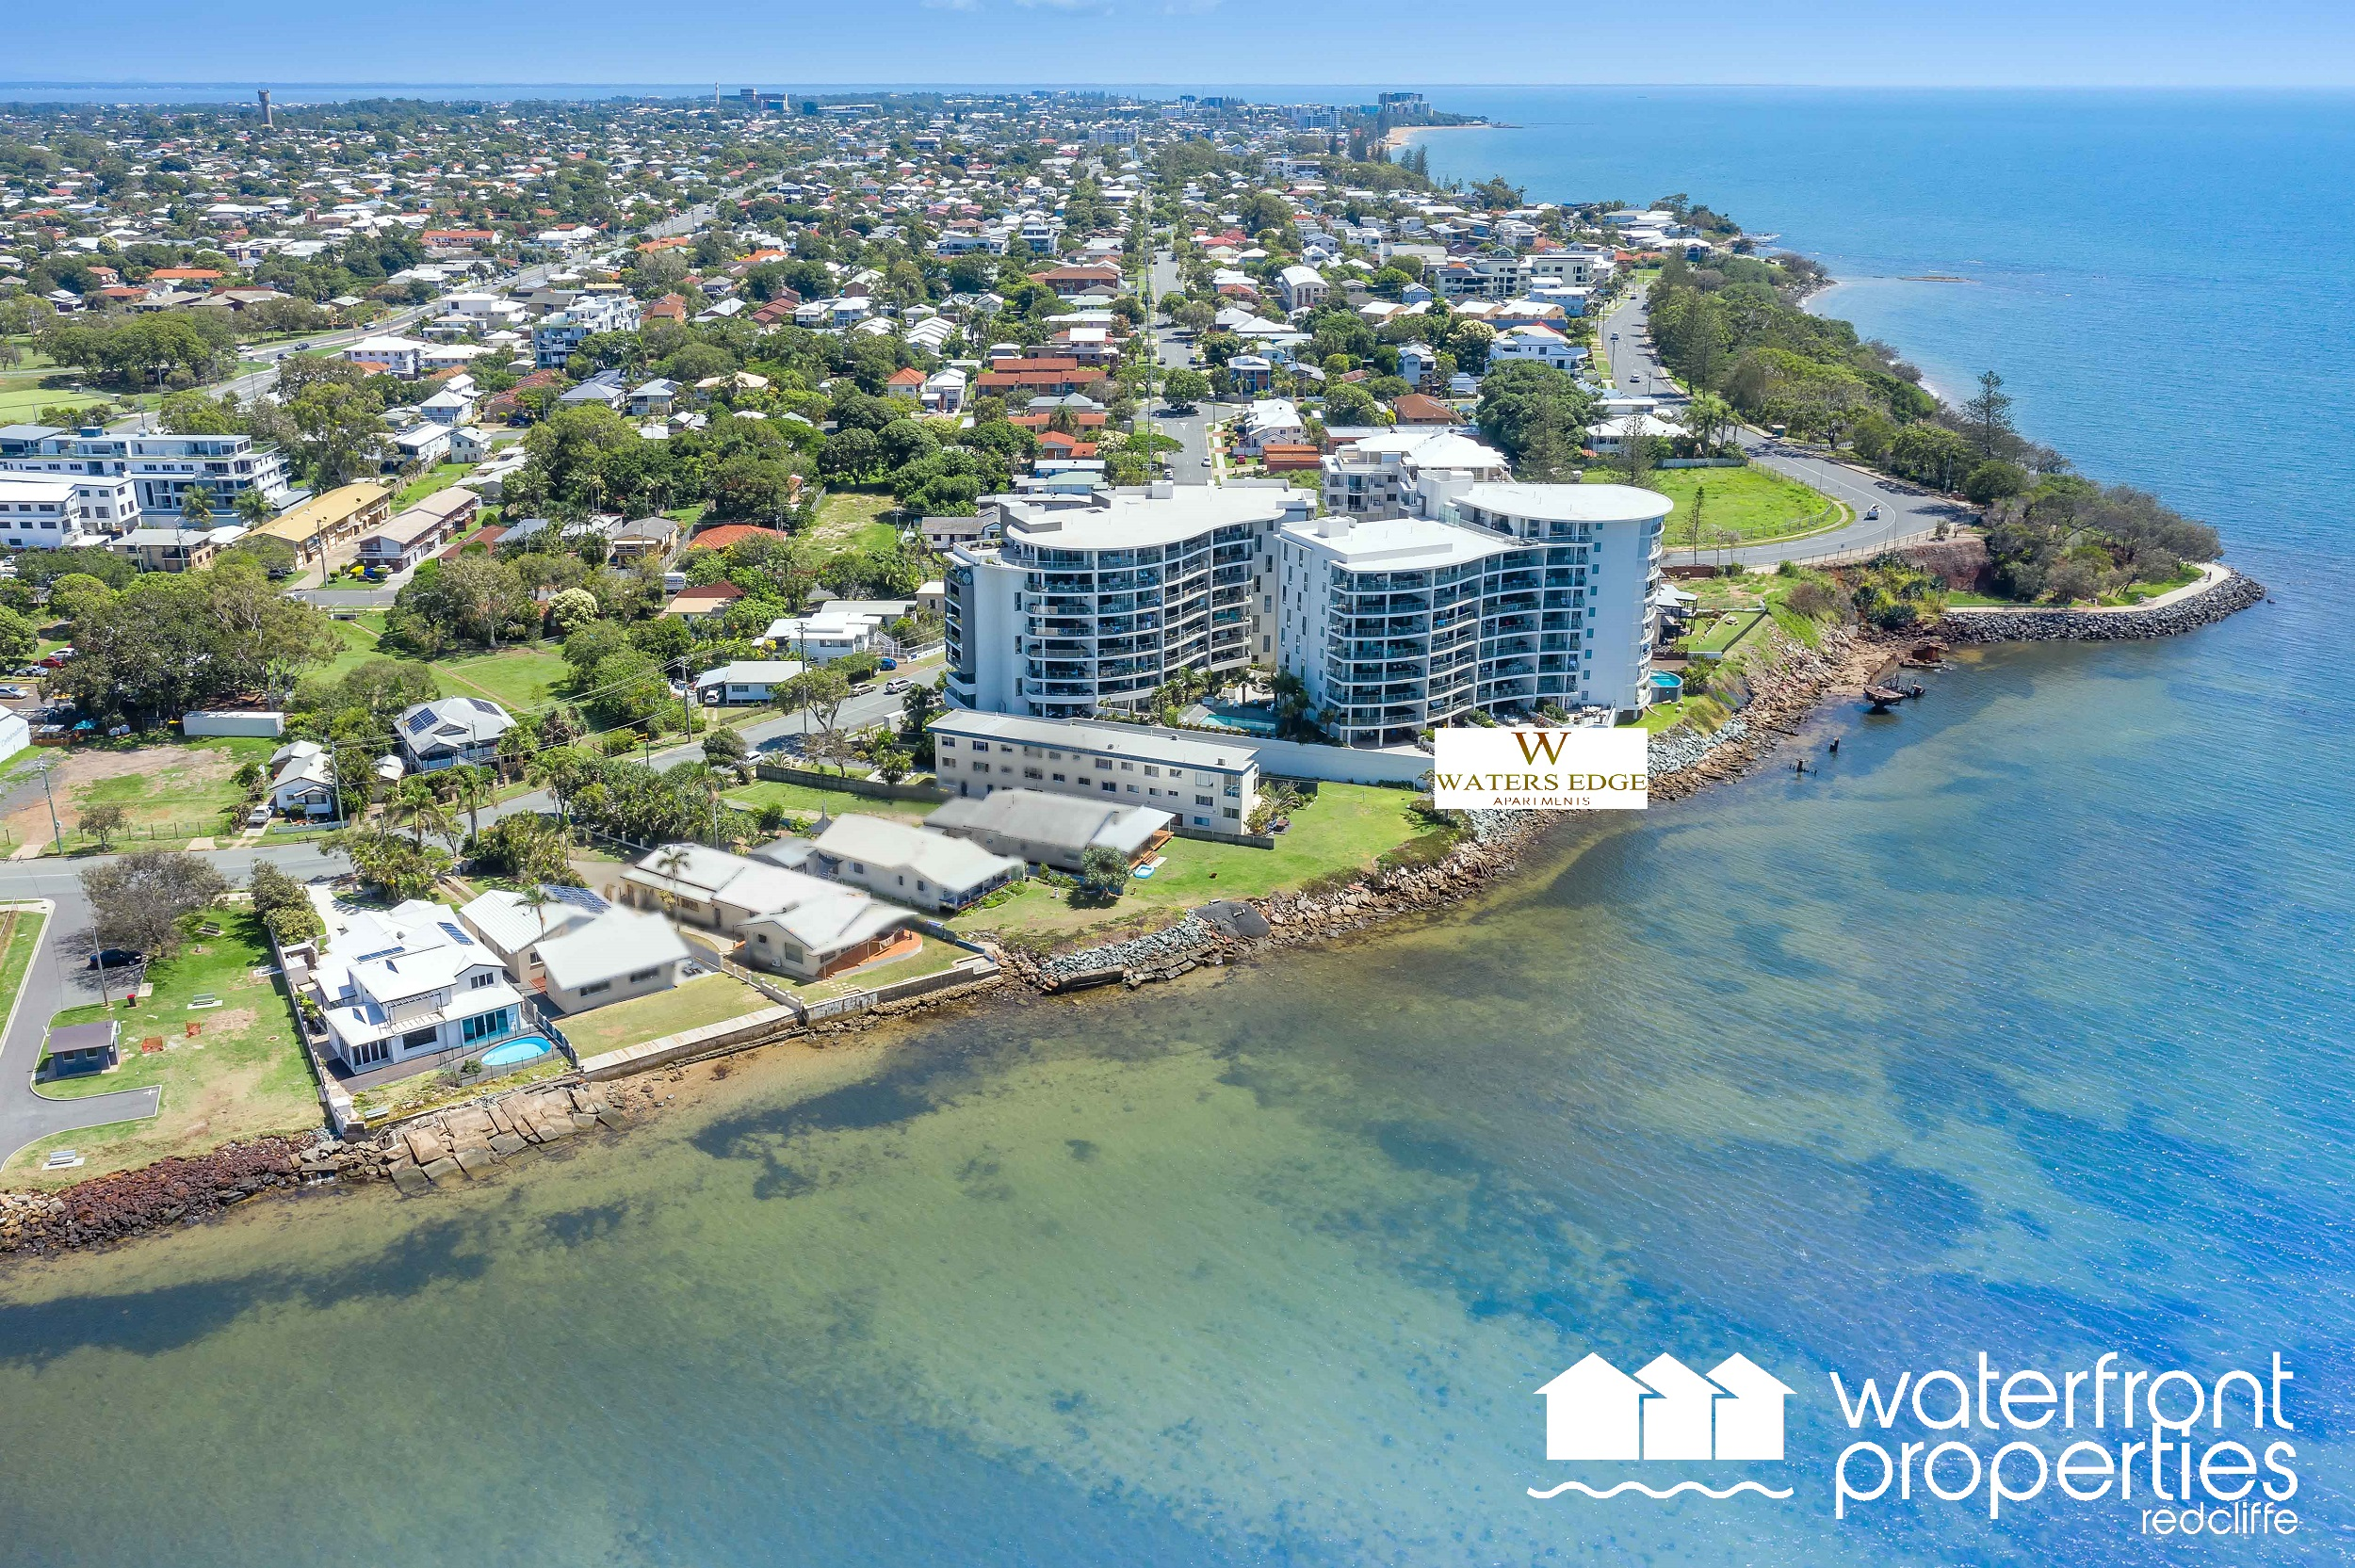 47/36 WOODCLIFFE CRESCENT, WOODY POINT  QLD  4019 4